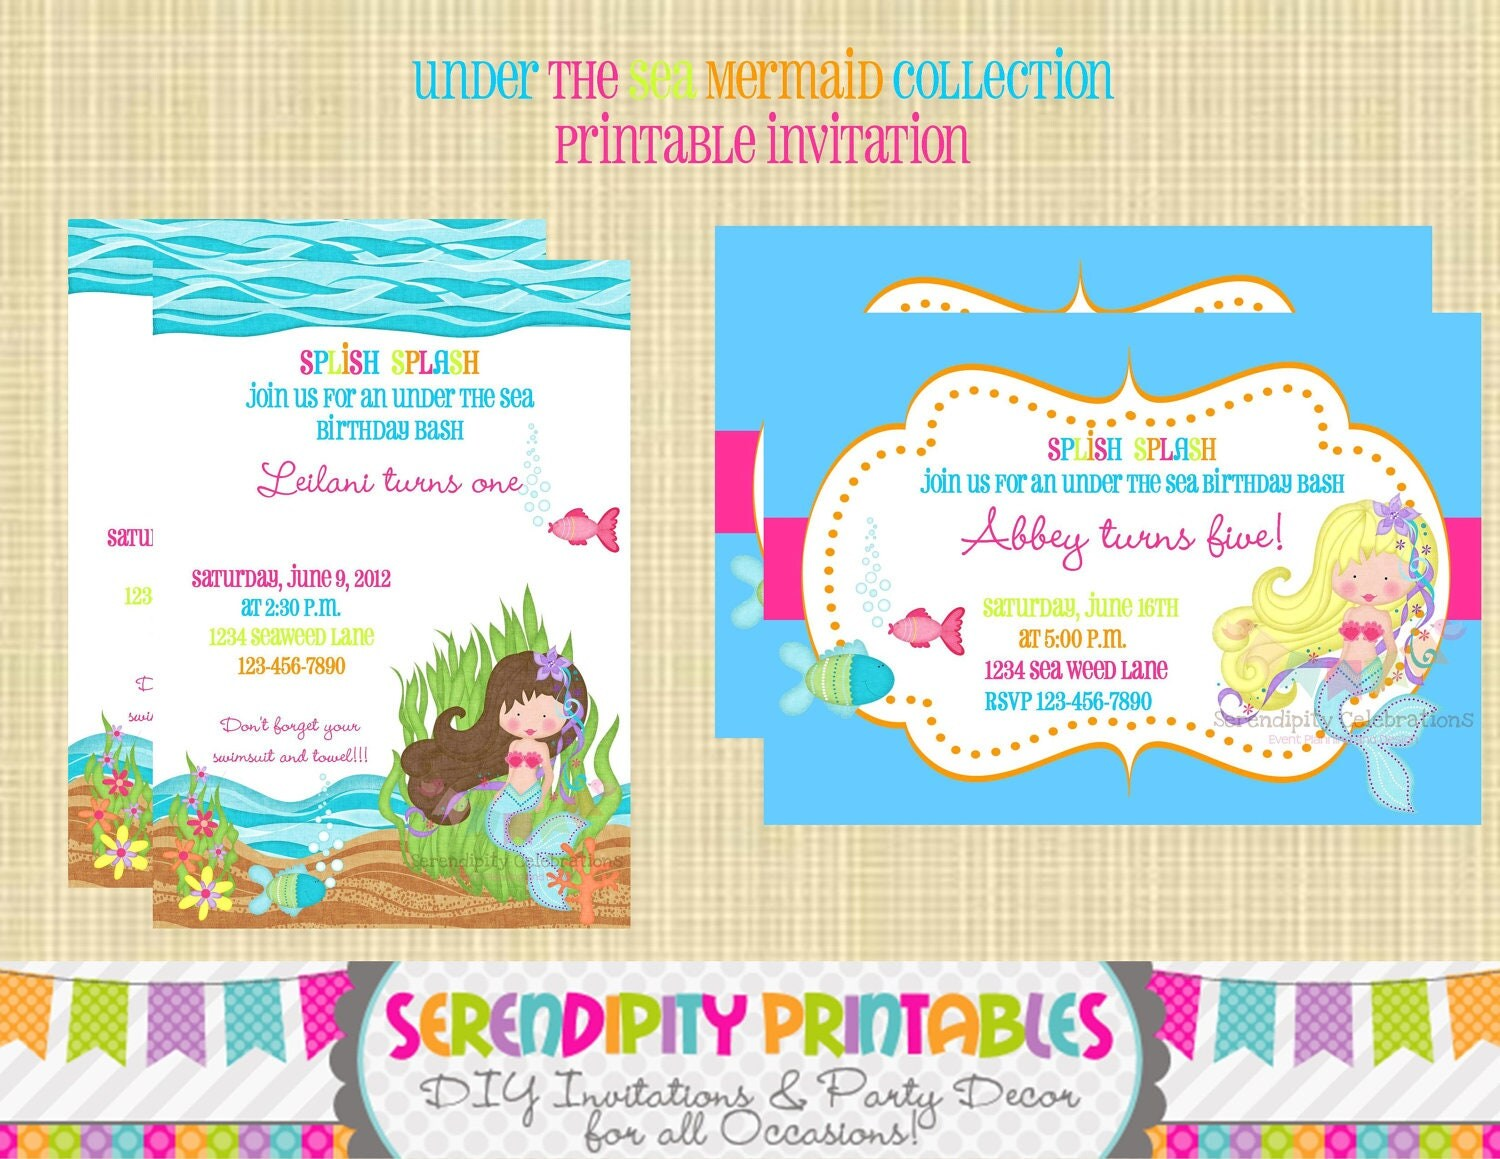 Under The Sea Mermaid Collection By Serendipityprintable